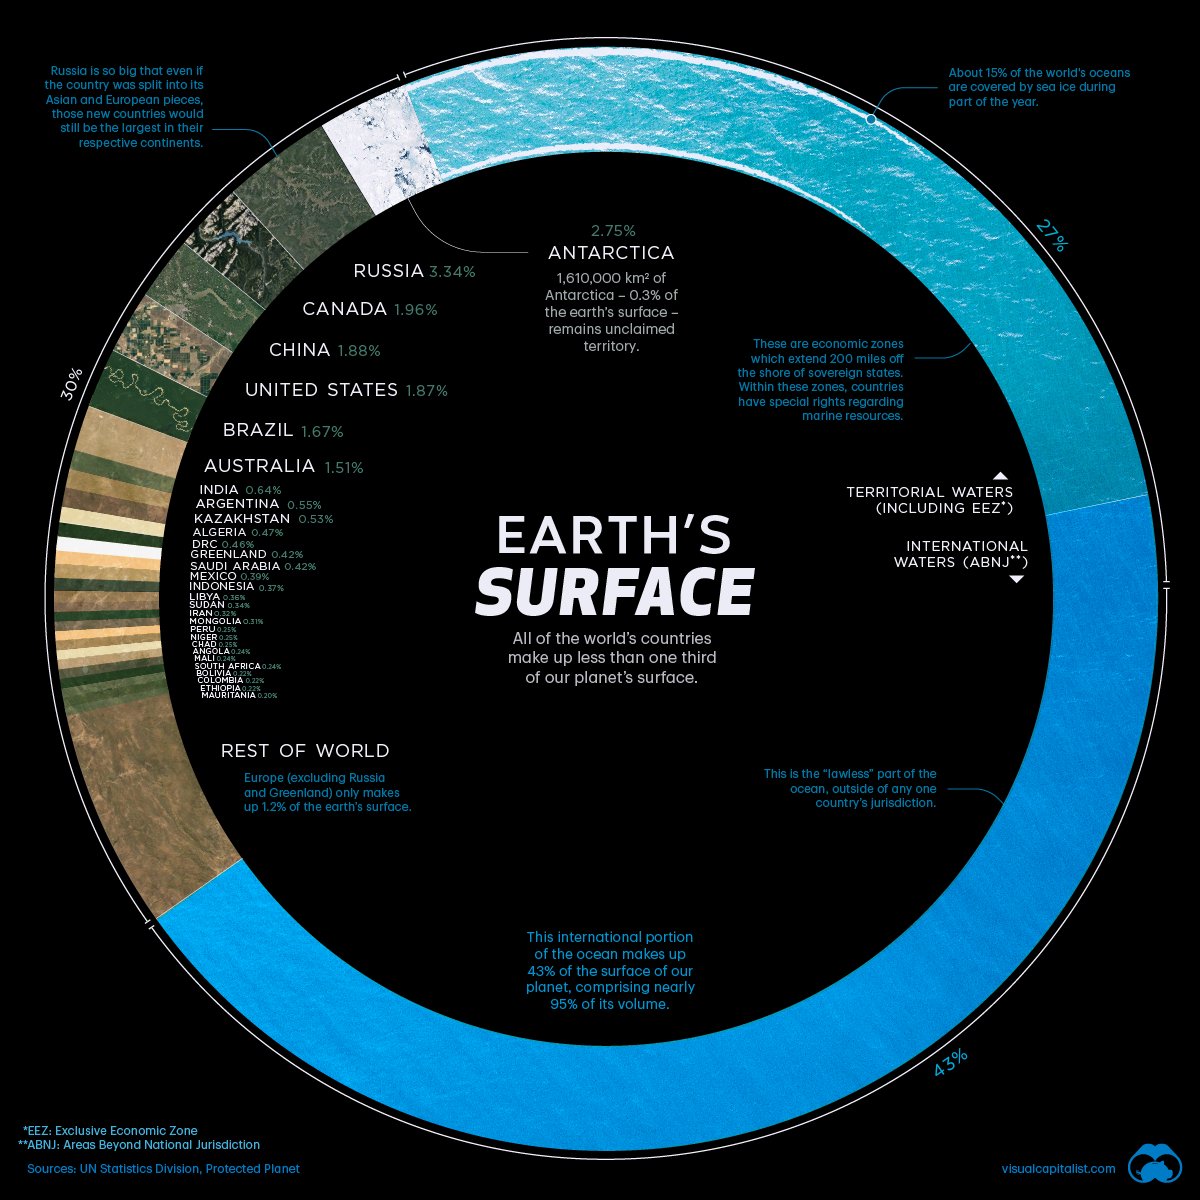 Countries Ranked by Share of Earth's Surface